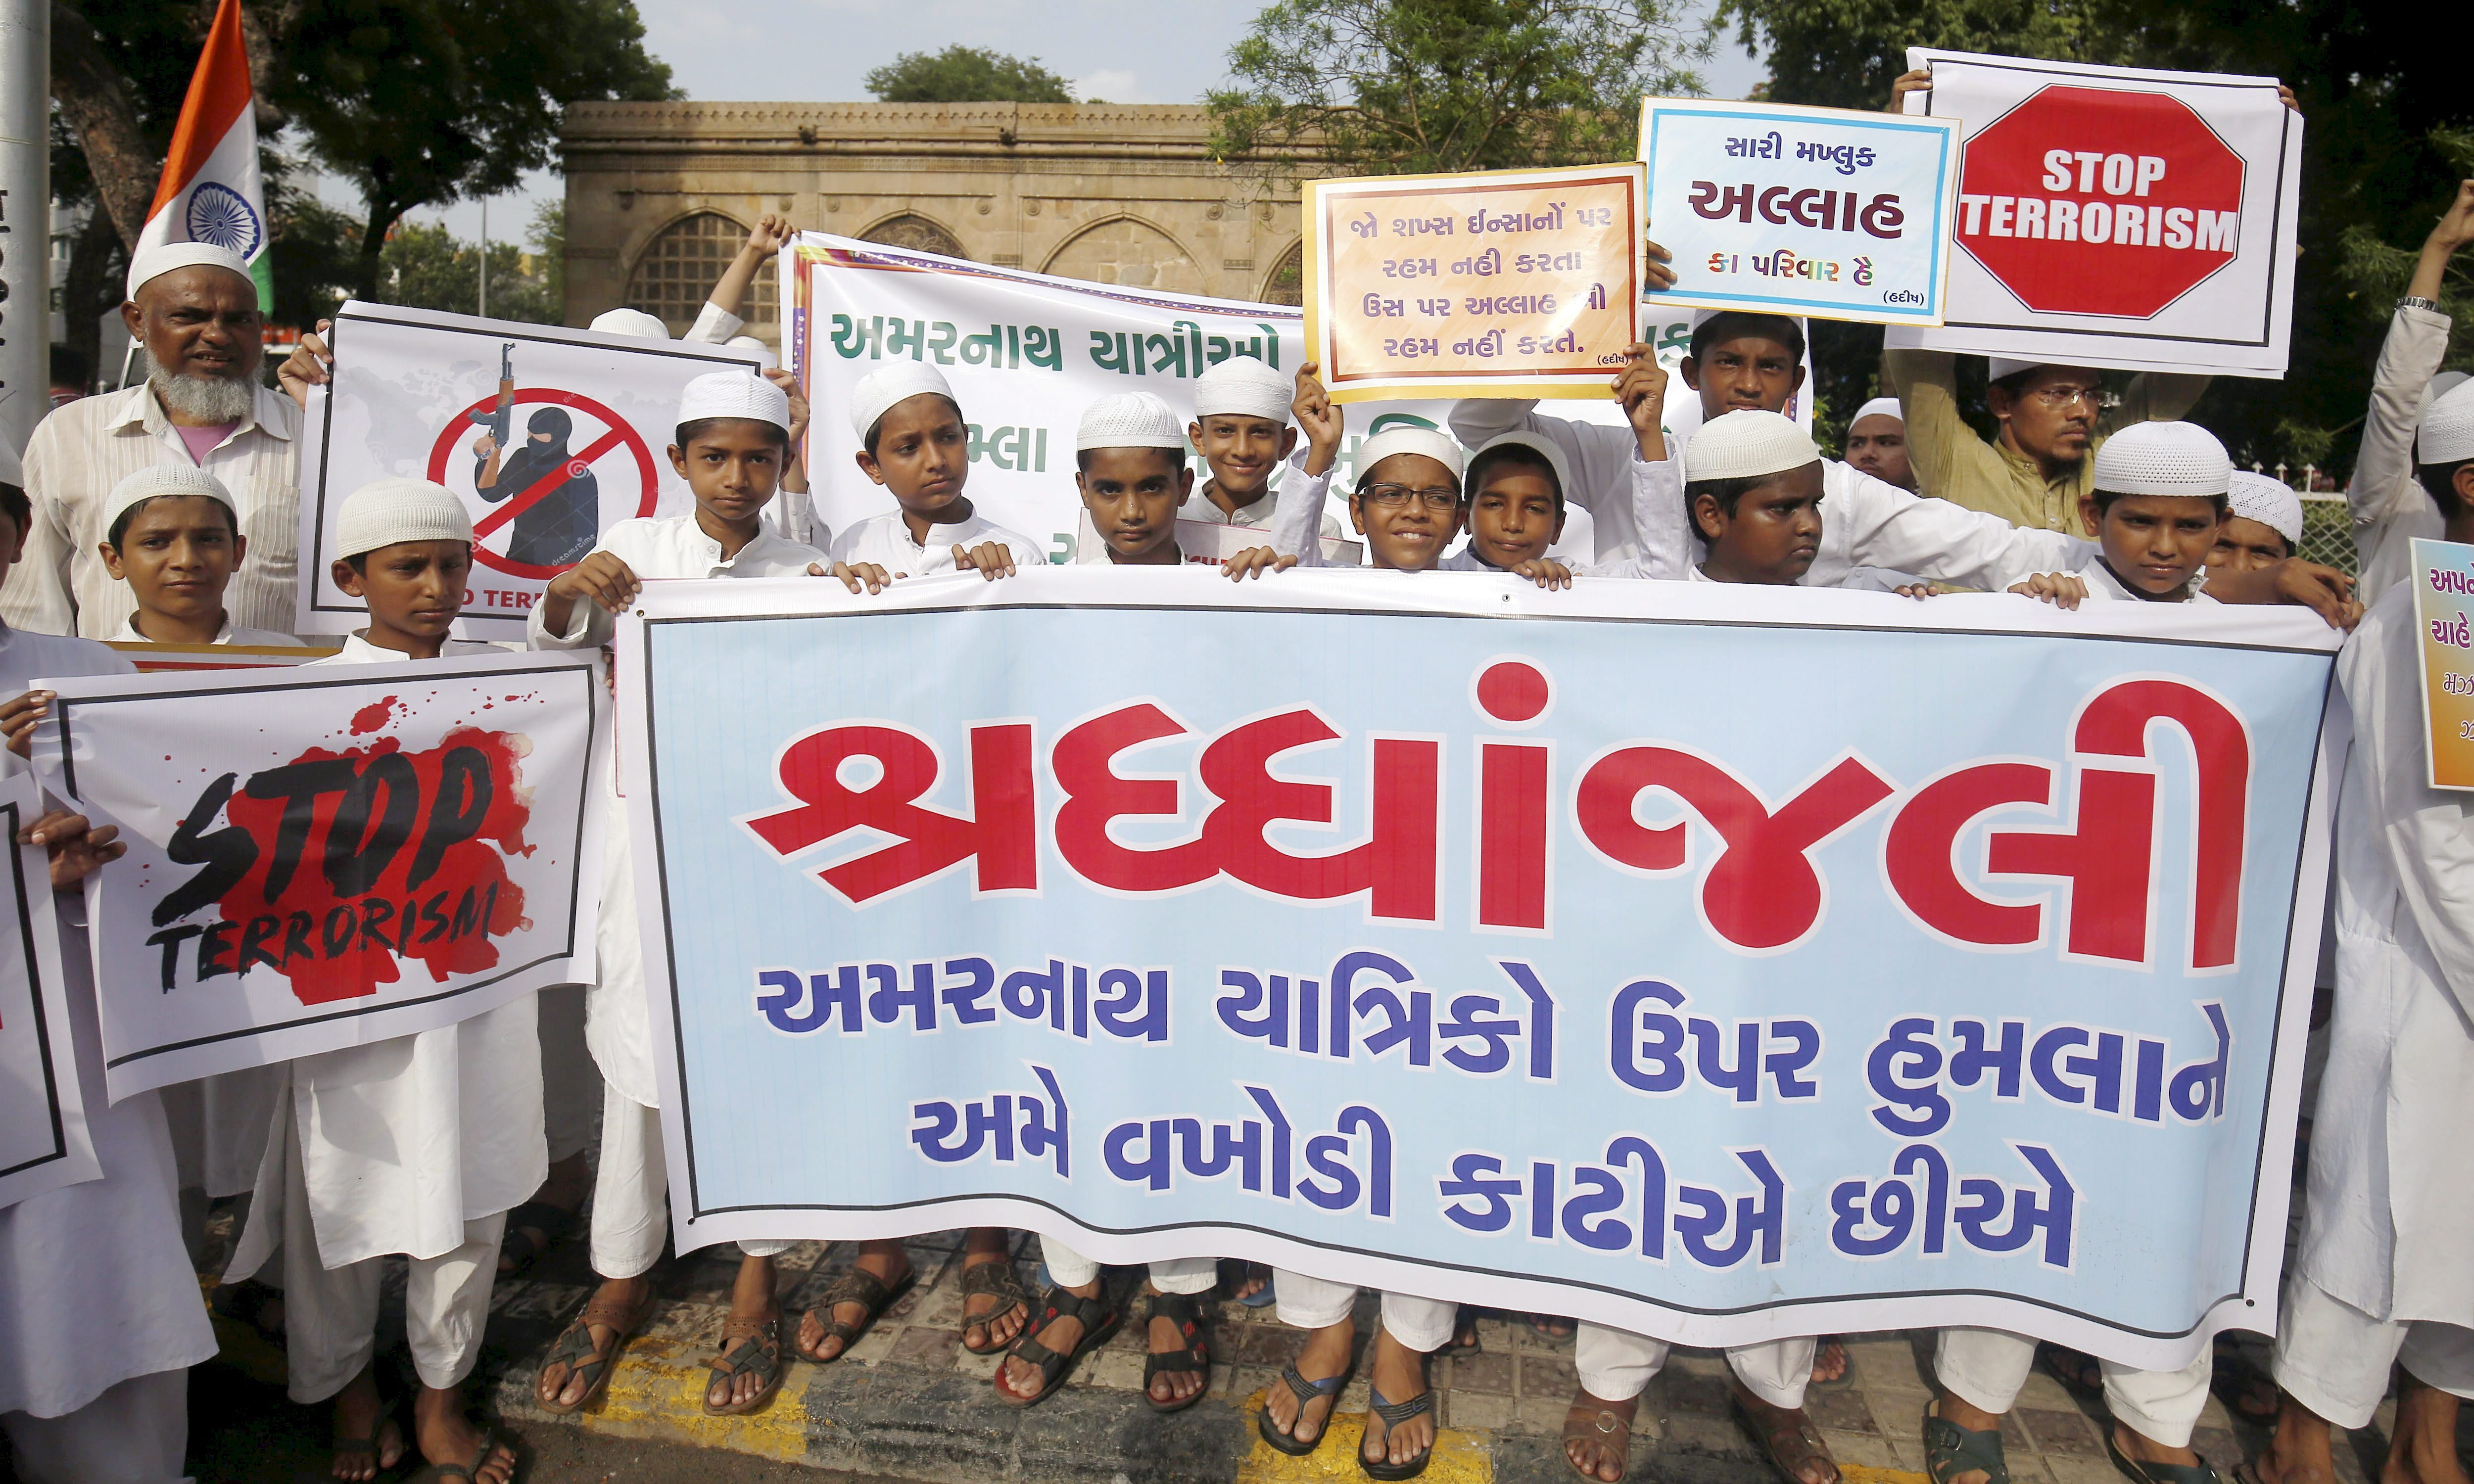 A Muslim group protests in Ahmedabad, Gujarat. (Pic: PTI)